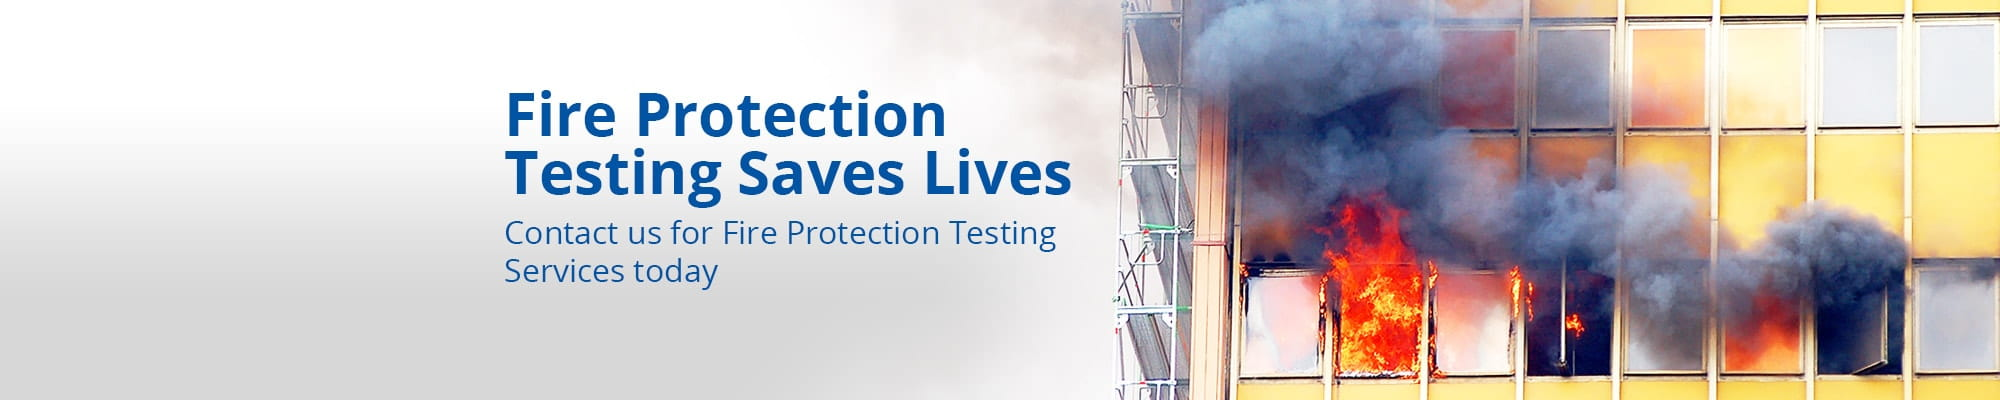 Fire Protection Testing